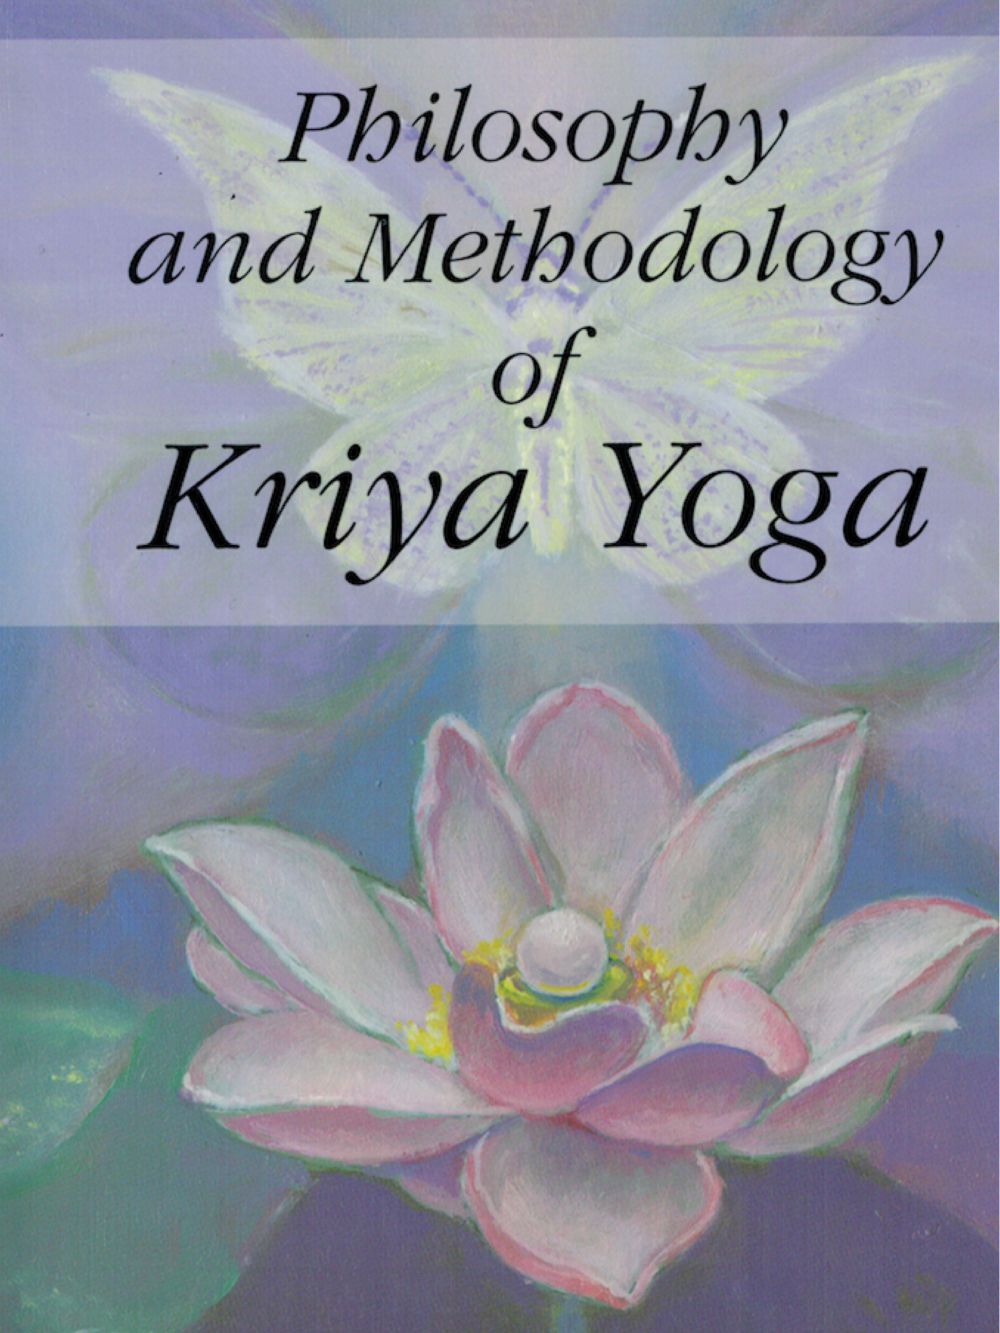 Philosophy & Methodology of Kriya Yoga - $18.95